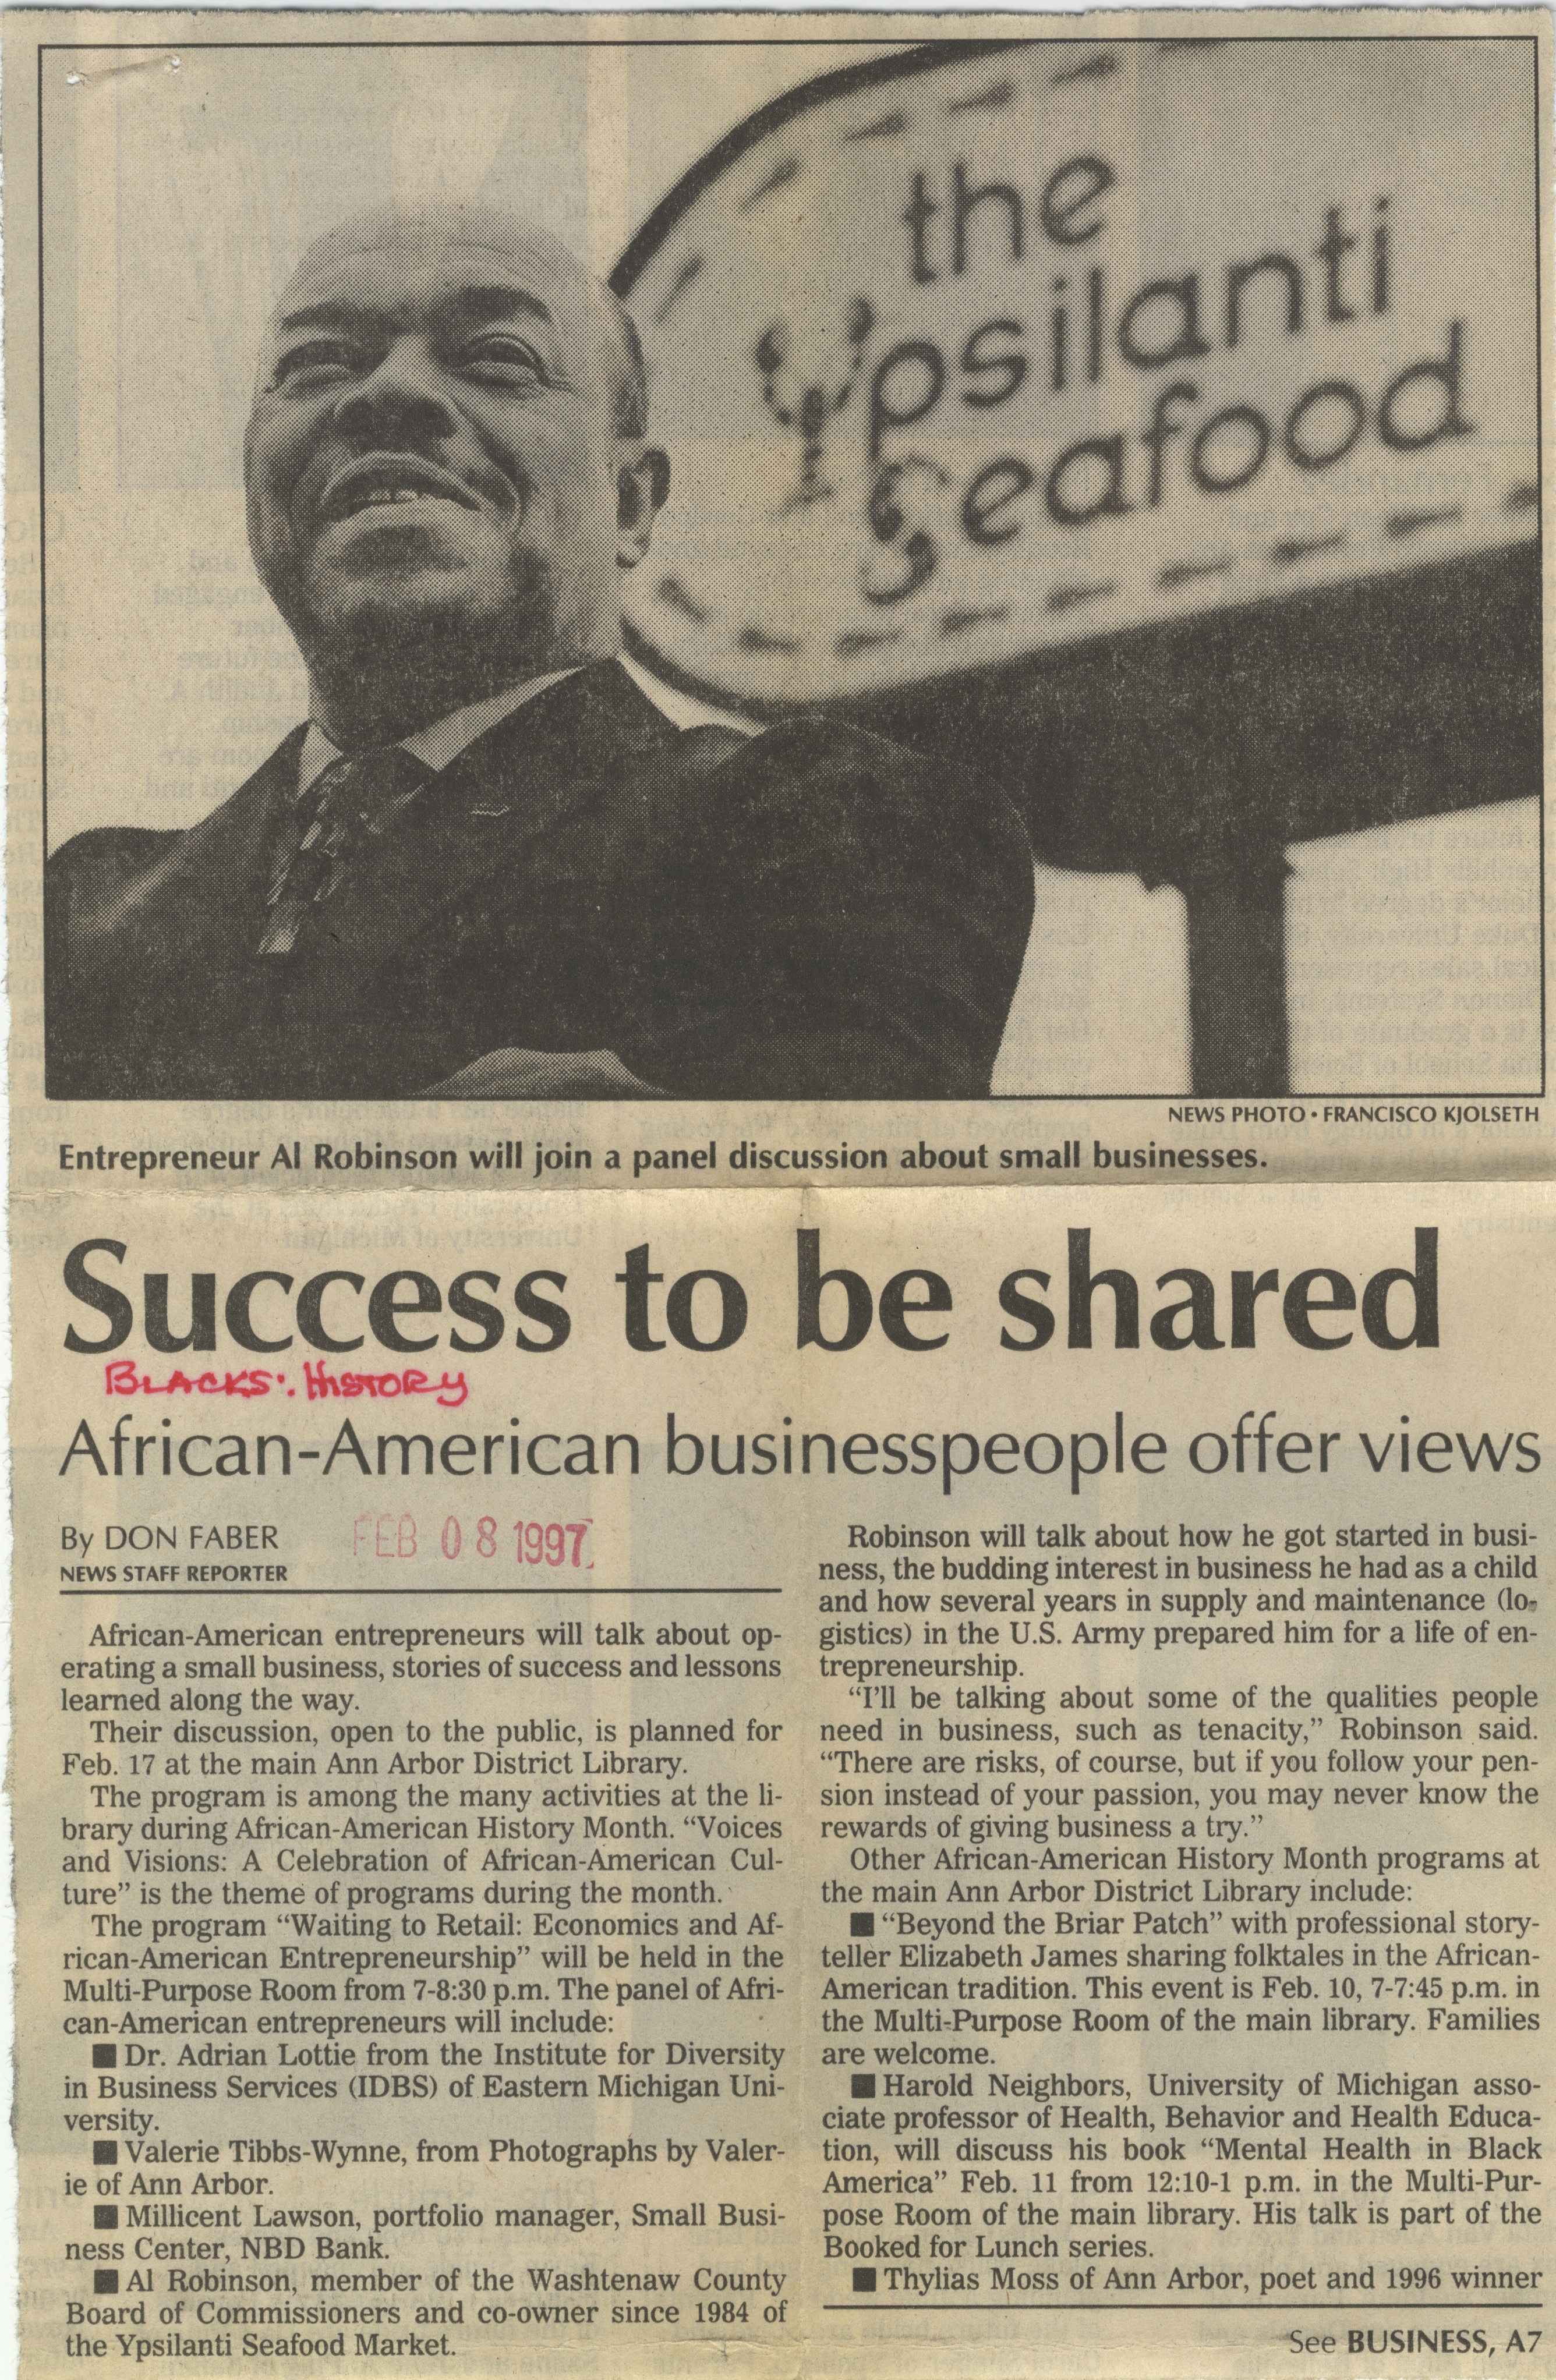 Success To Be Shared: African-American Businesspeople Offer Views image